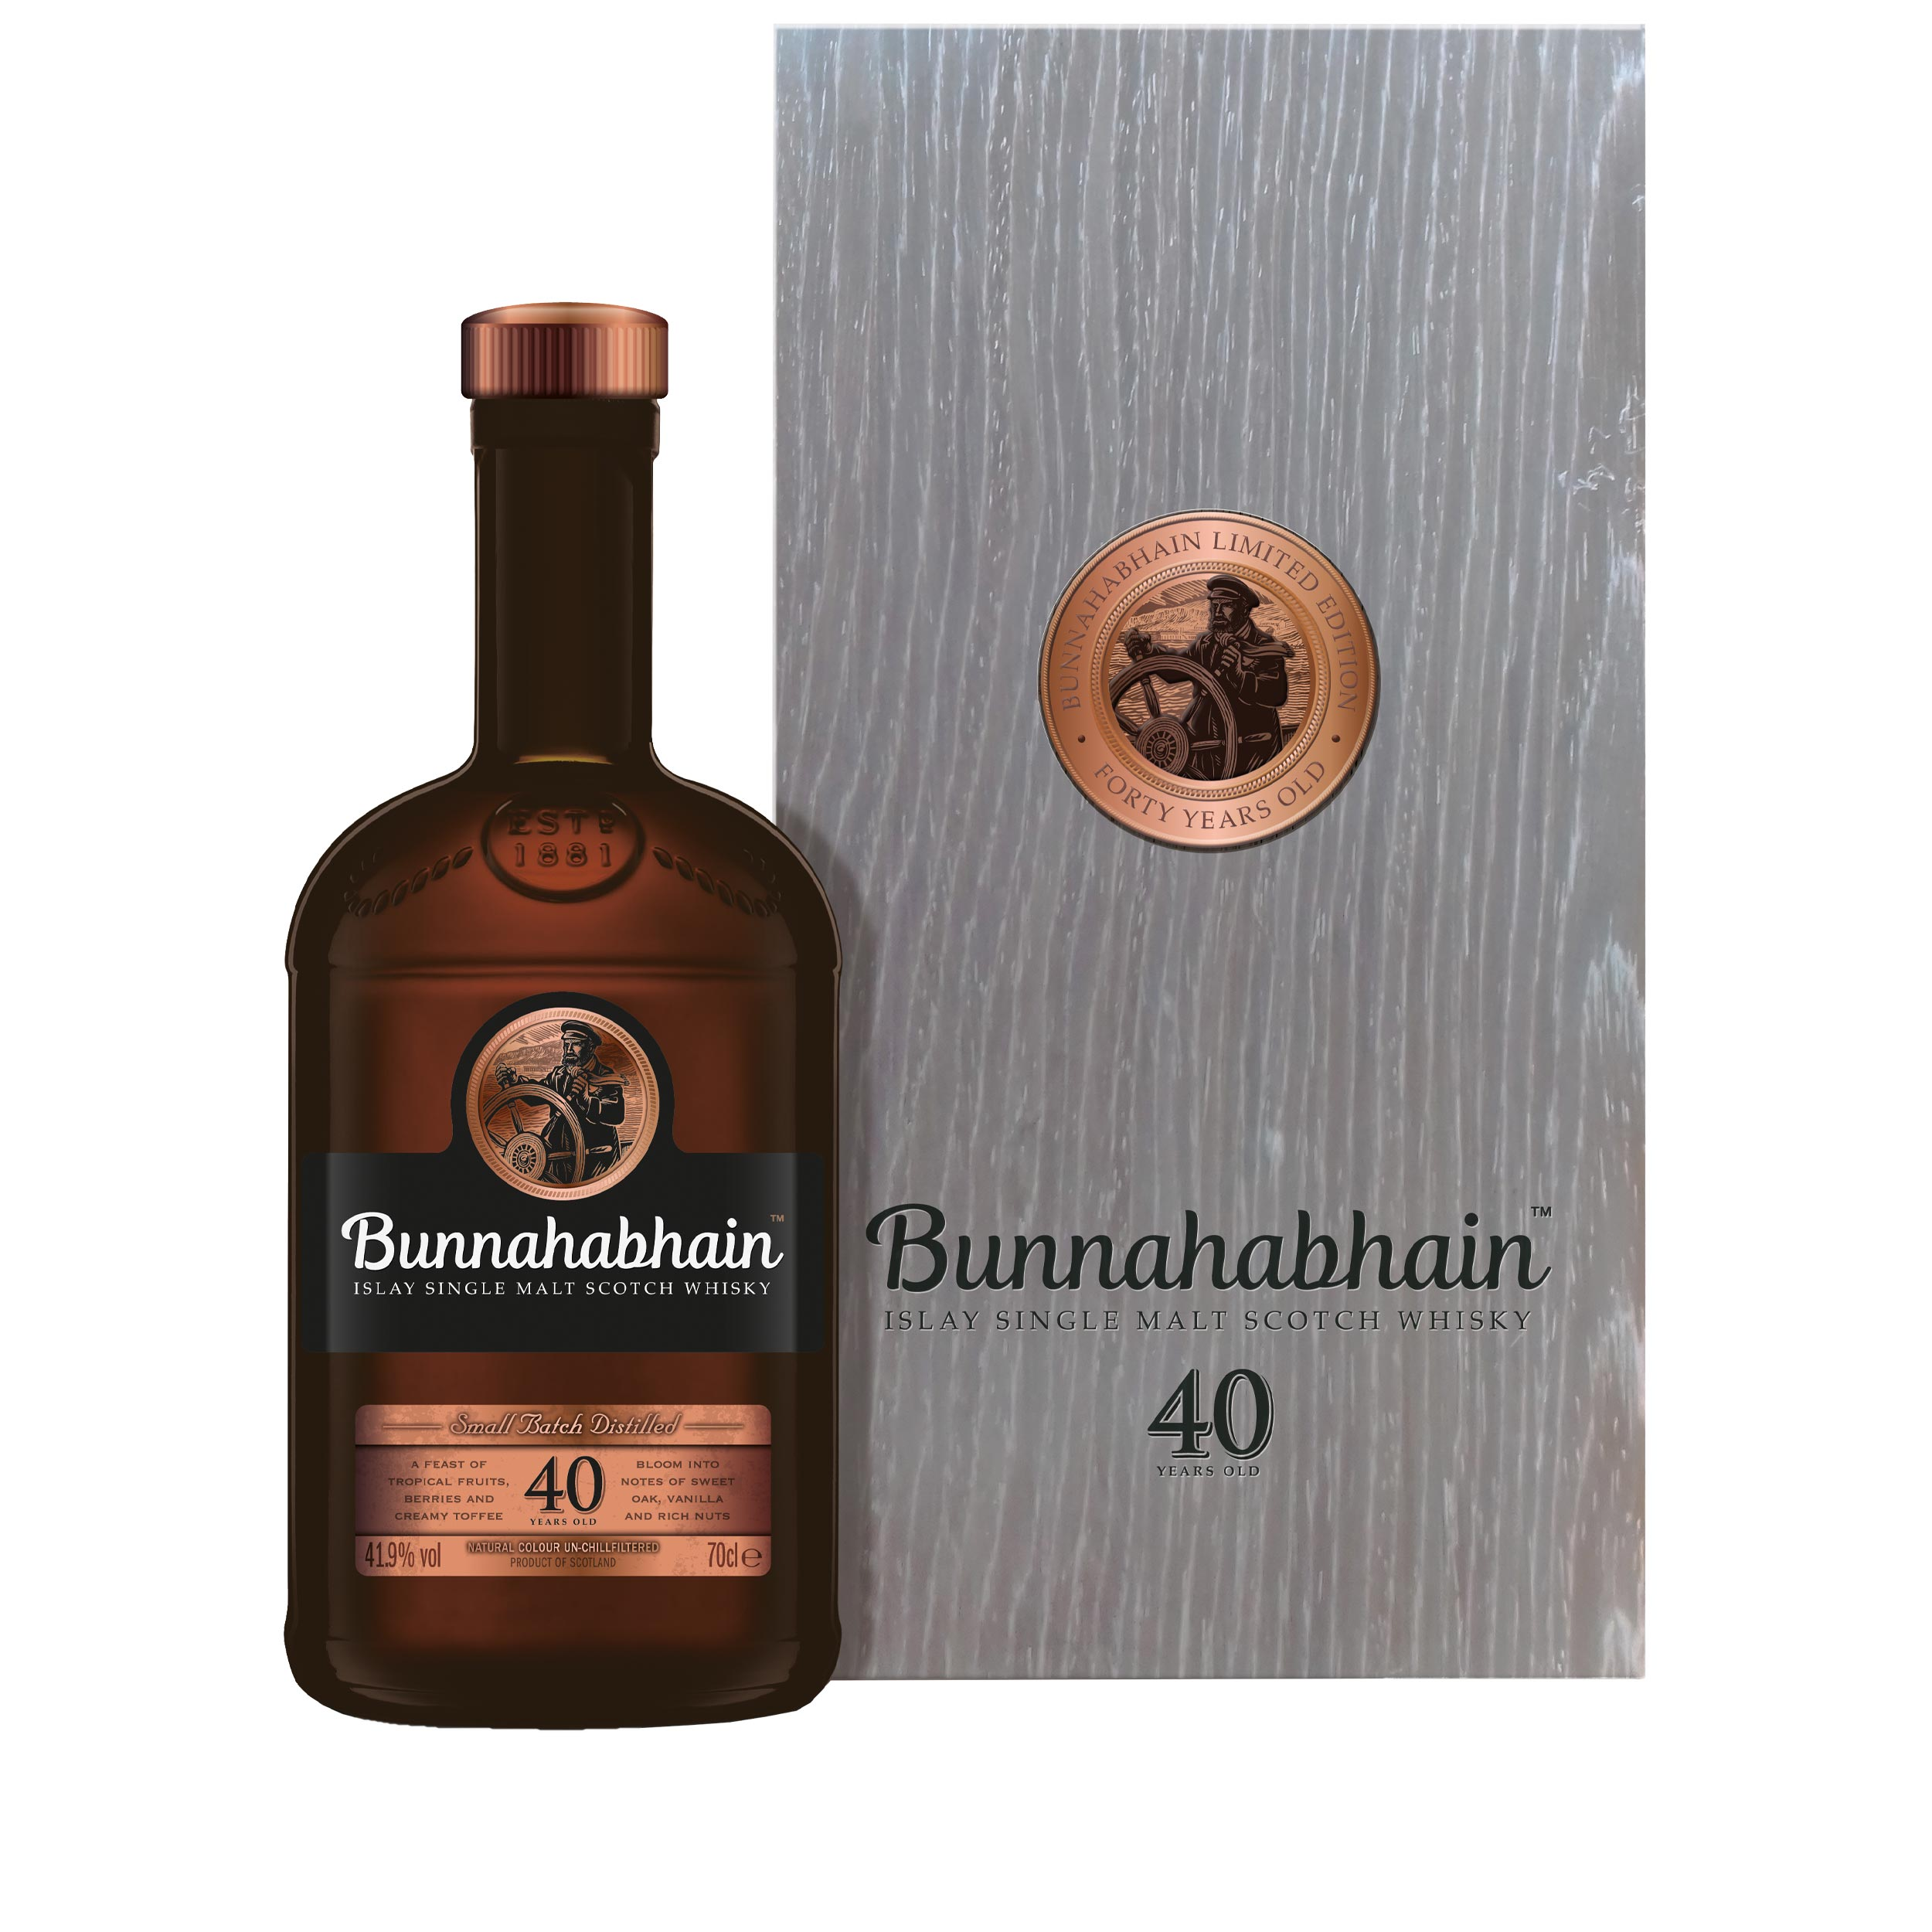 Bunnahabhain 40 Year Old Limited Edition Islay Single Malt Scotch Whisky 70cl